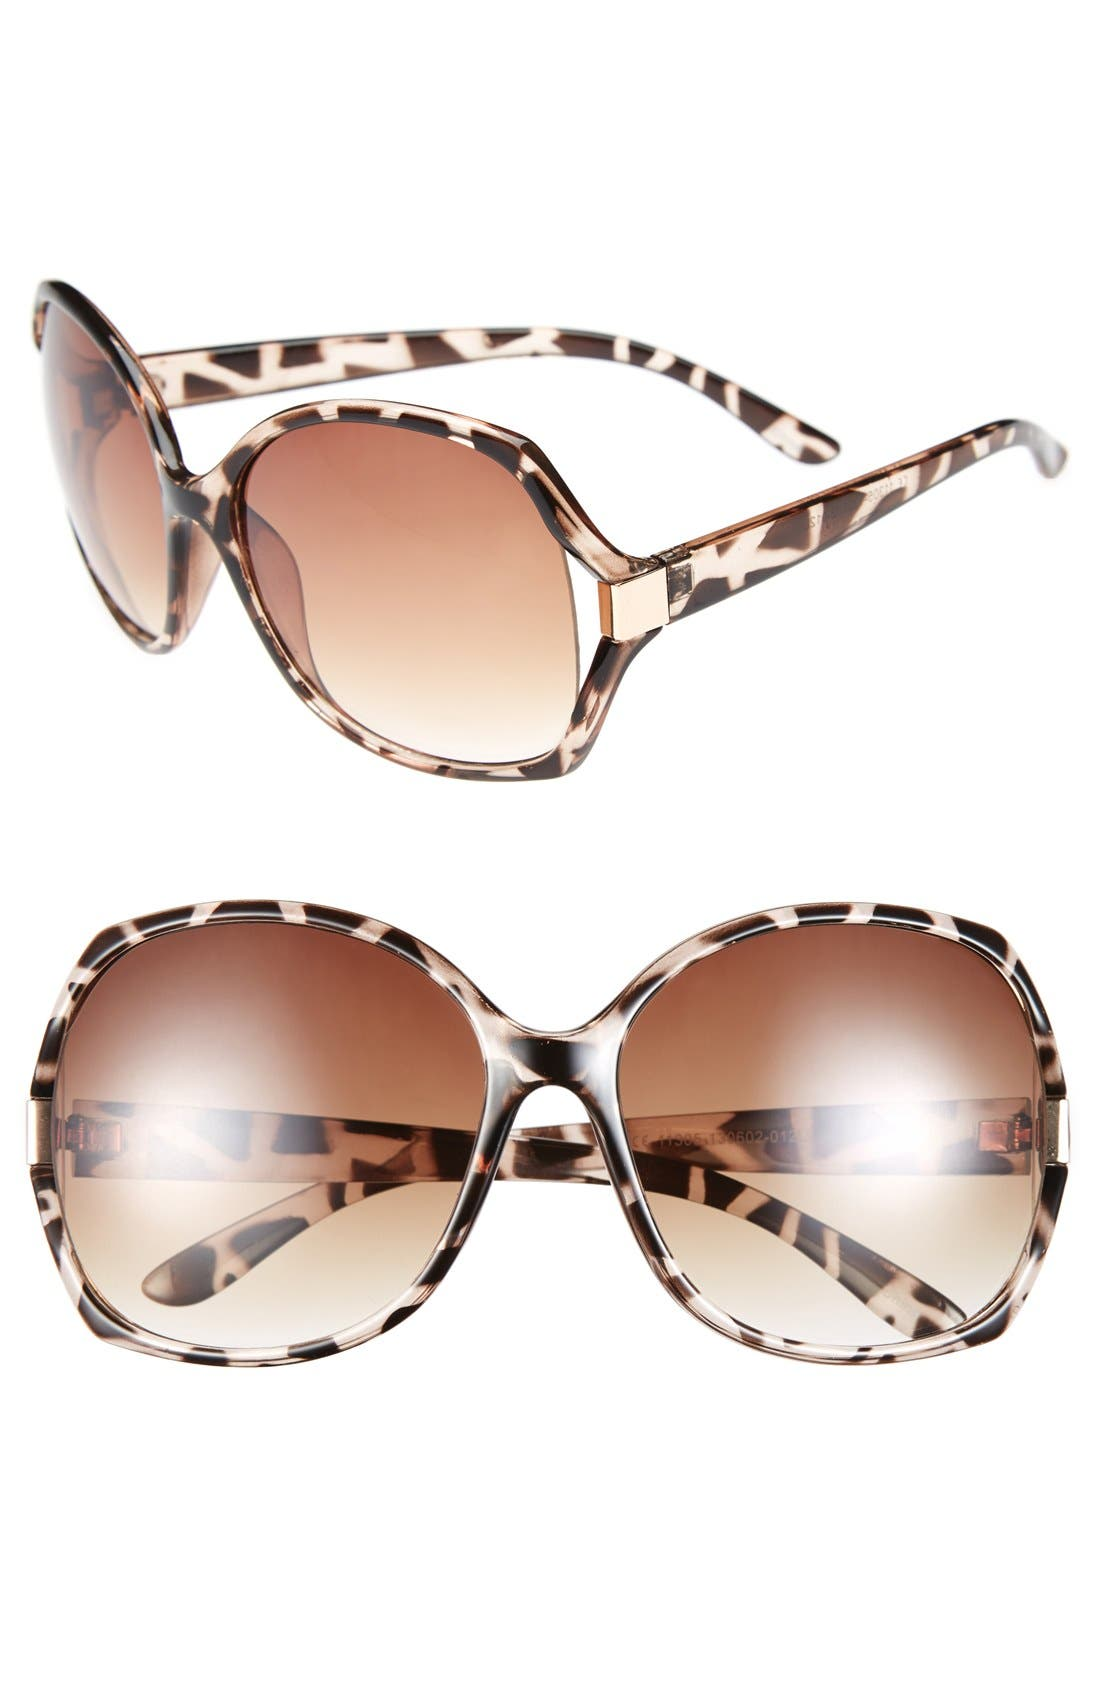 Alternate Image 1 Selected - Icon Eyewear Oversized Square Sunglasses (Juniors)